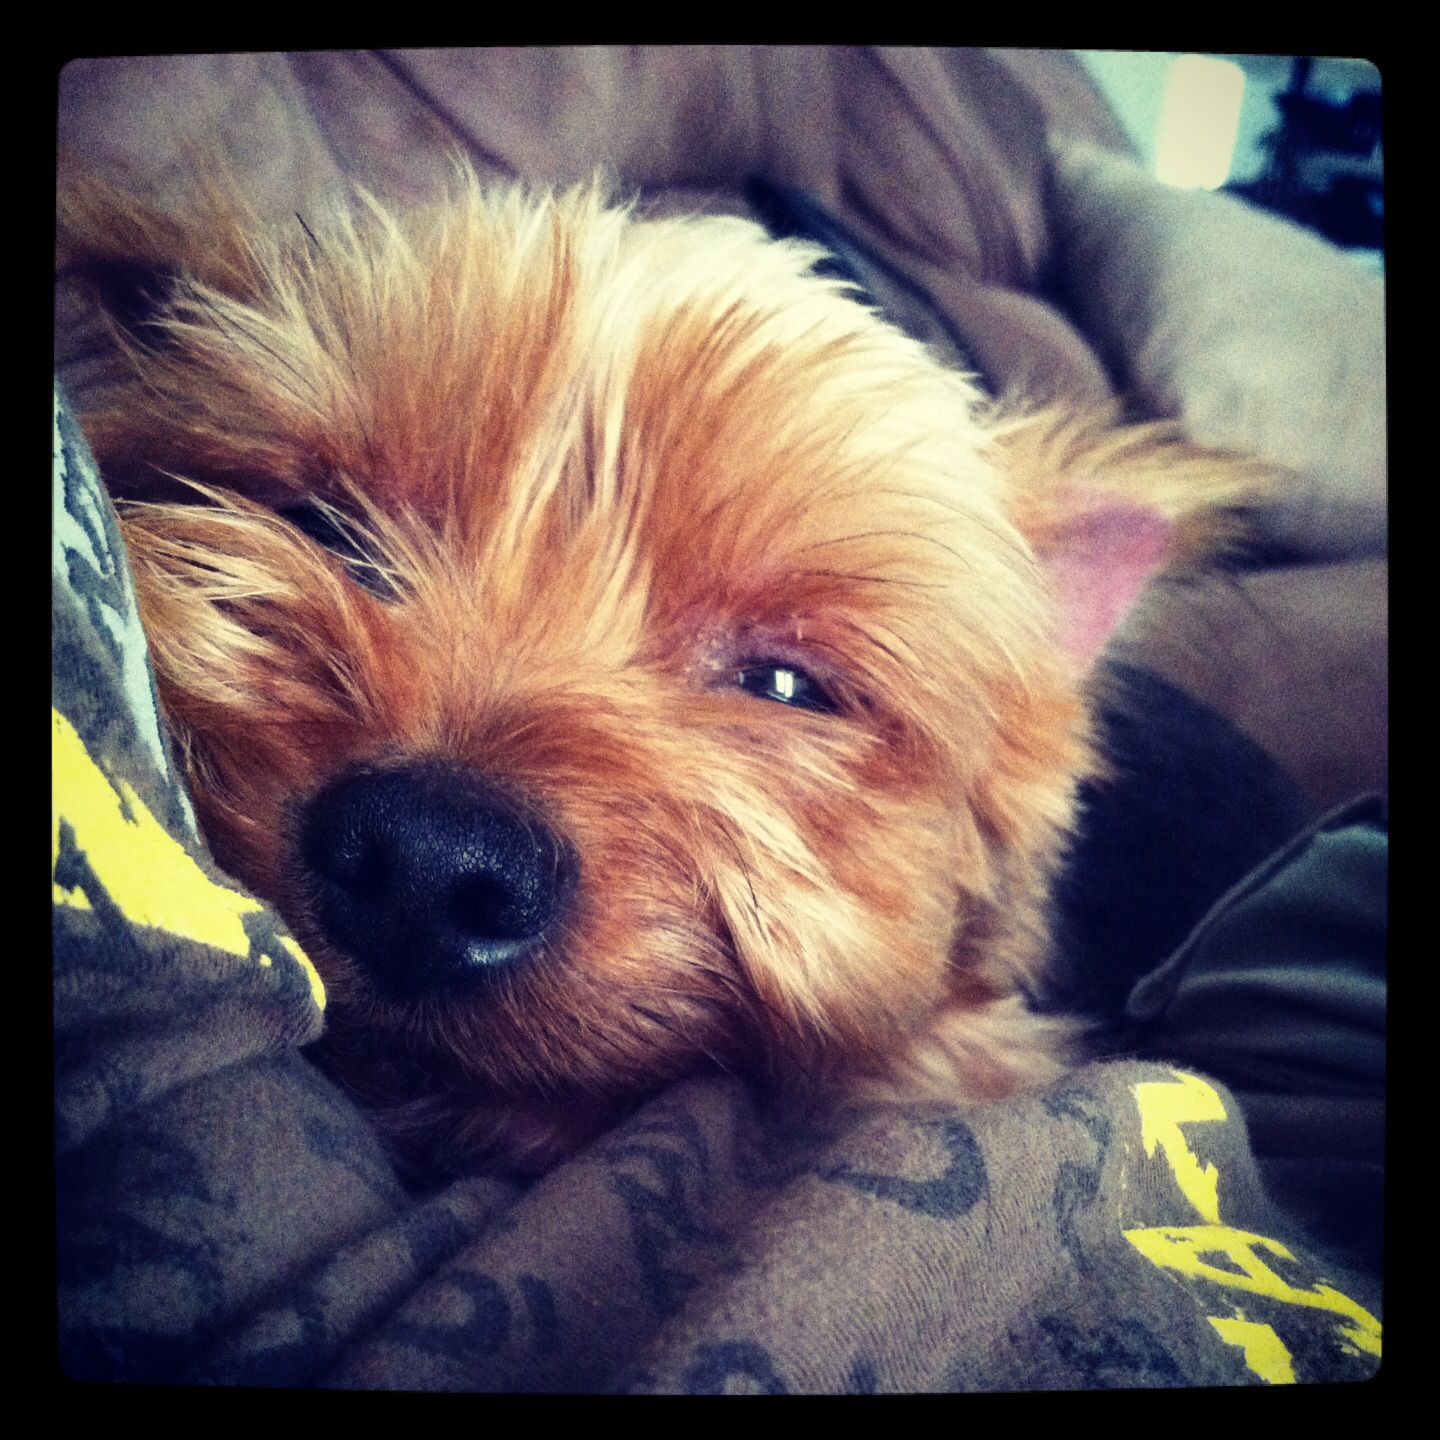 Happy Animals. My yorkie, Andre. He looks like a little chipmunk.